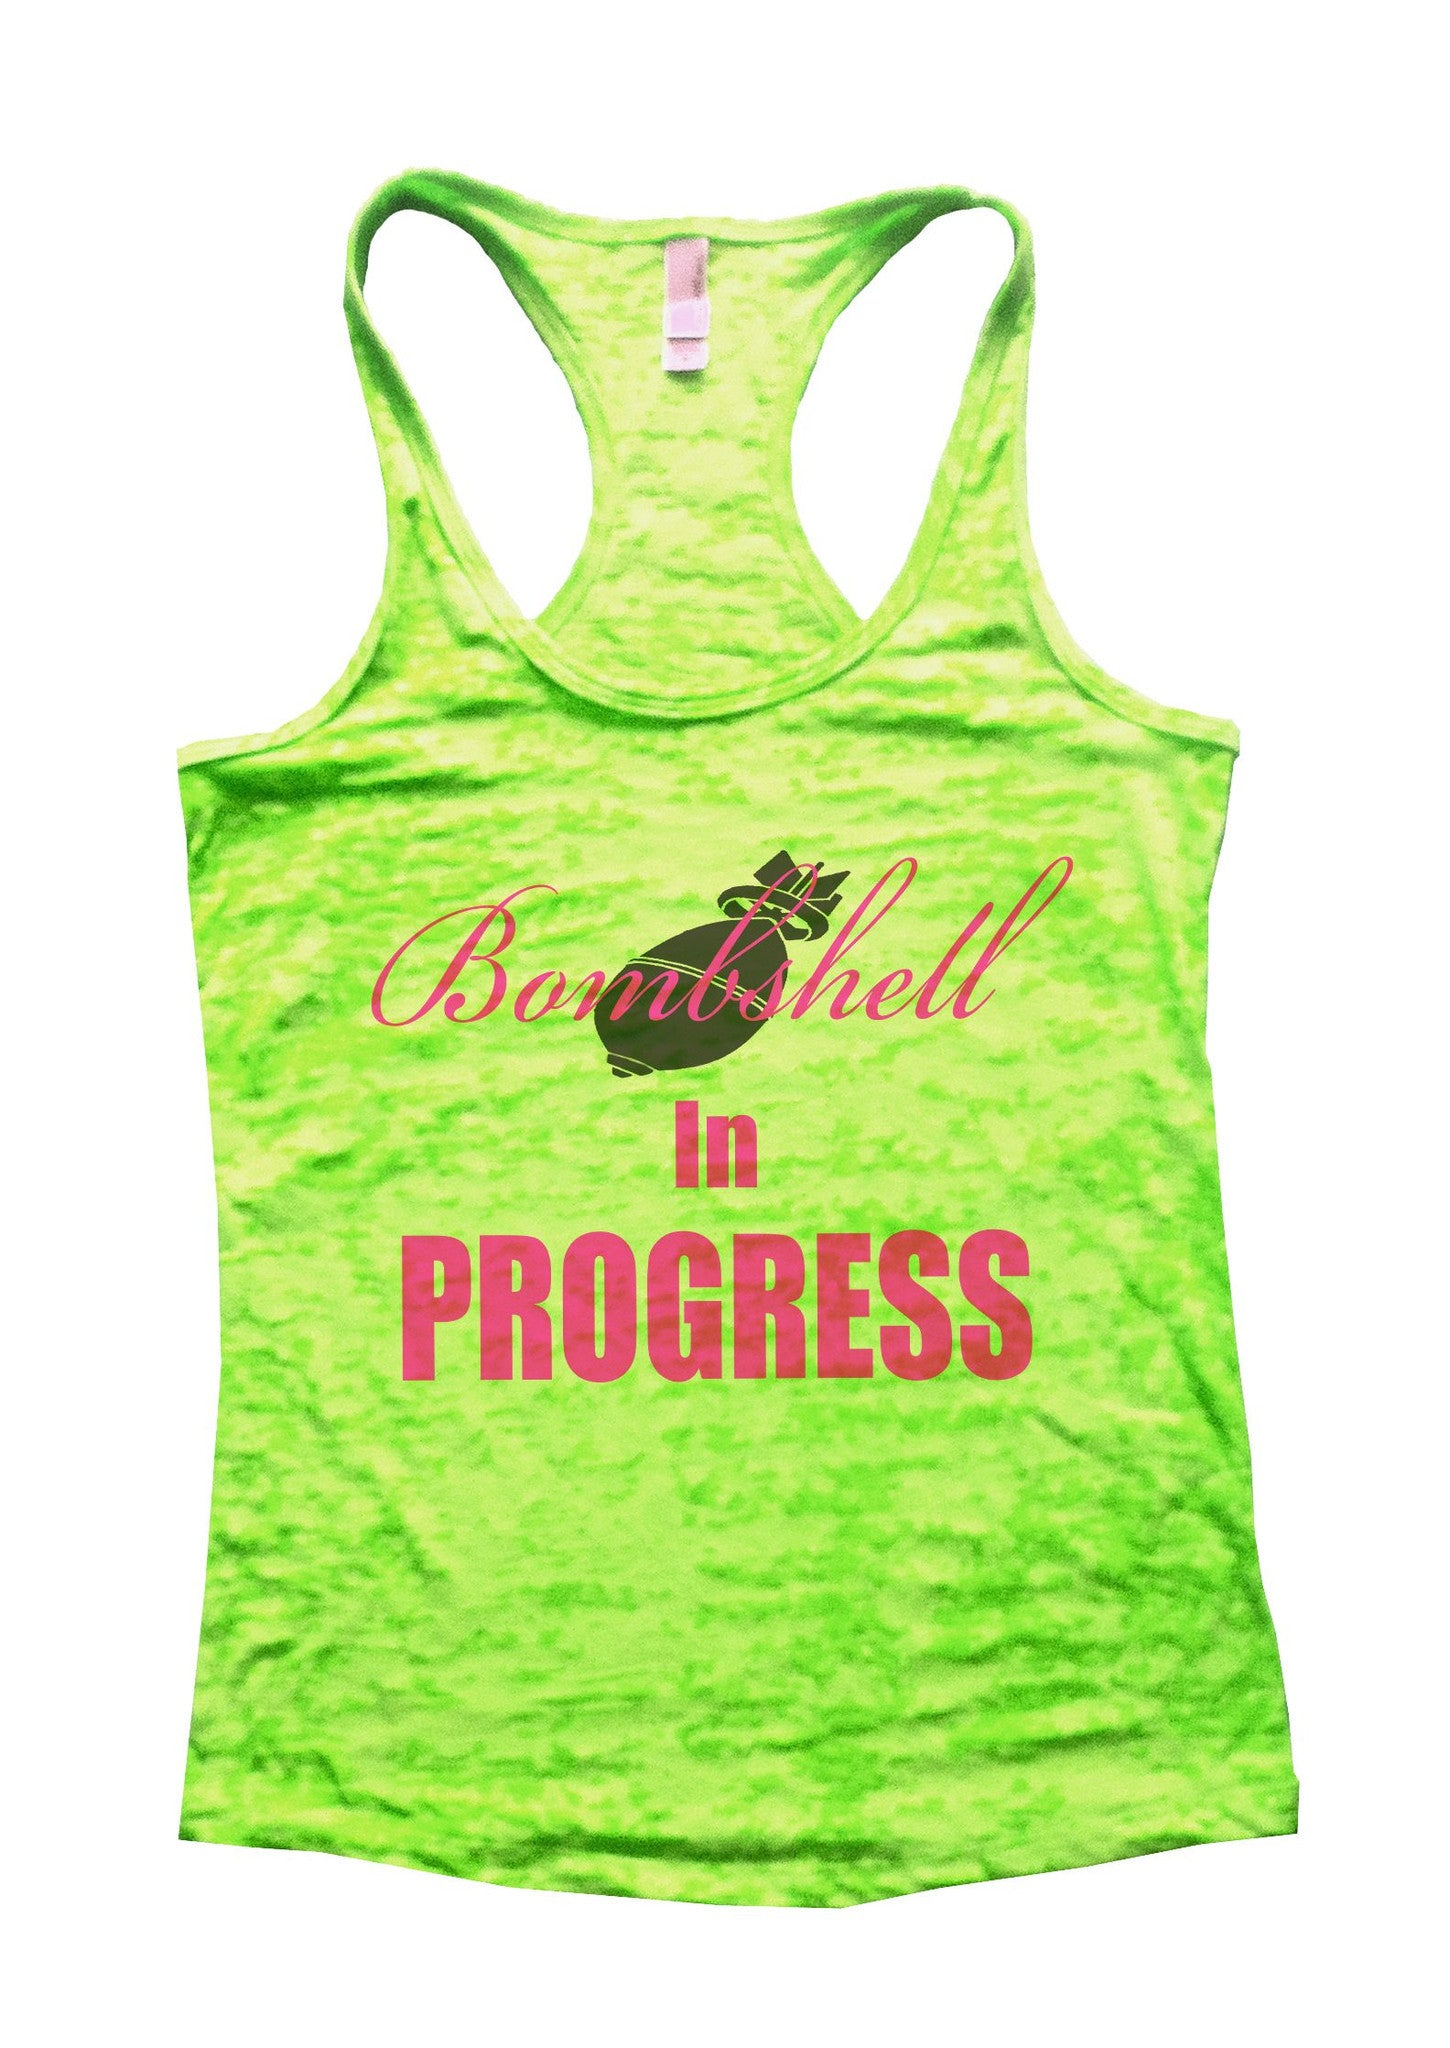 Bombshell In Progress Burnout Tank Top By BurnoutTankTops.com - 705 - Funny Shirts Tank Tops Burnouts and Triblends  - 3